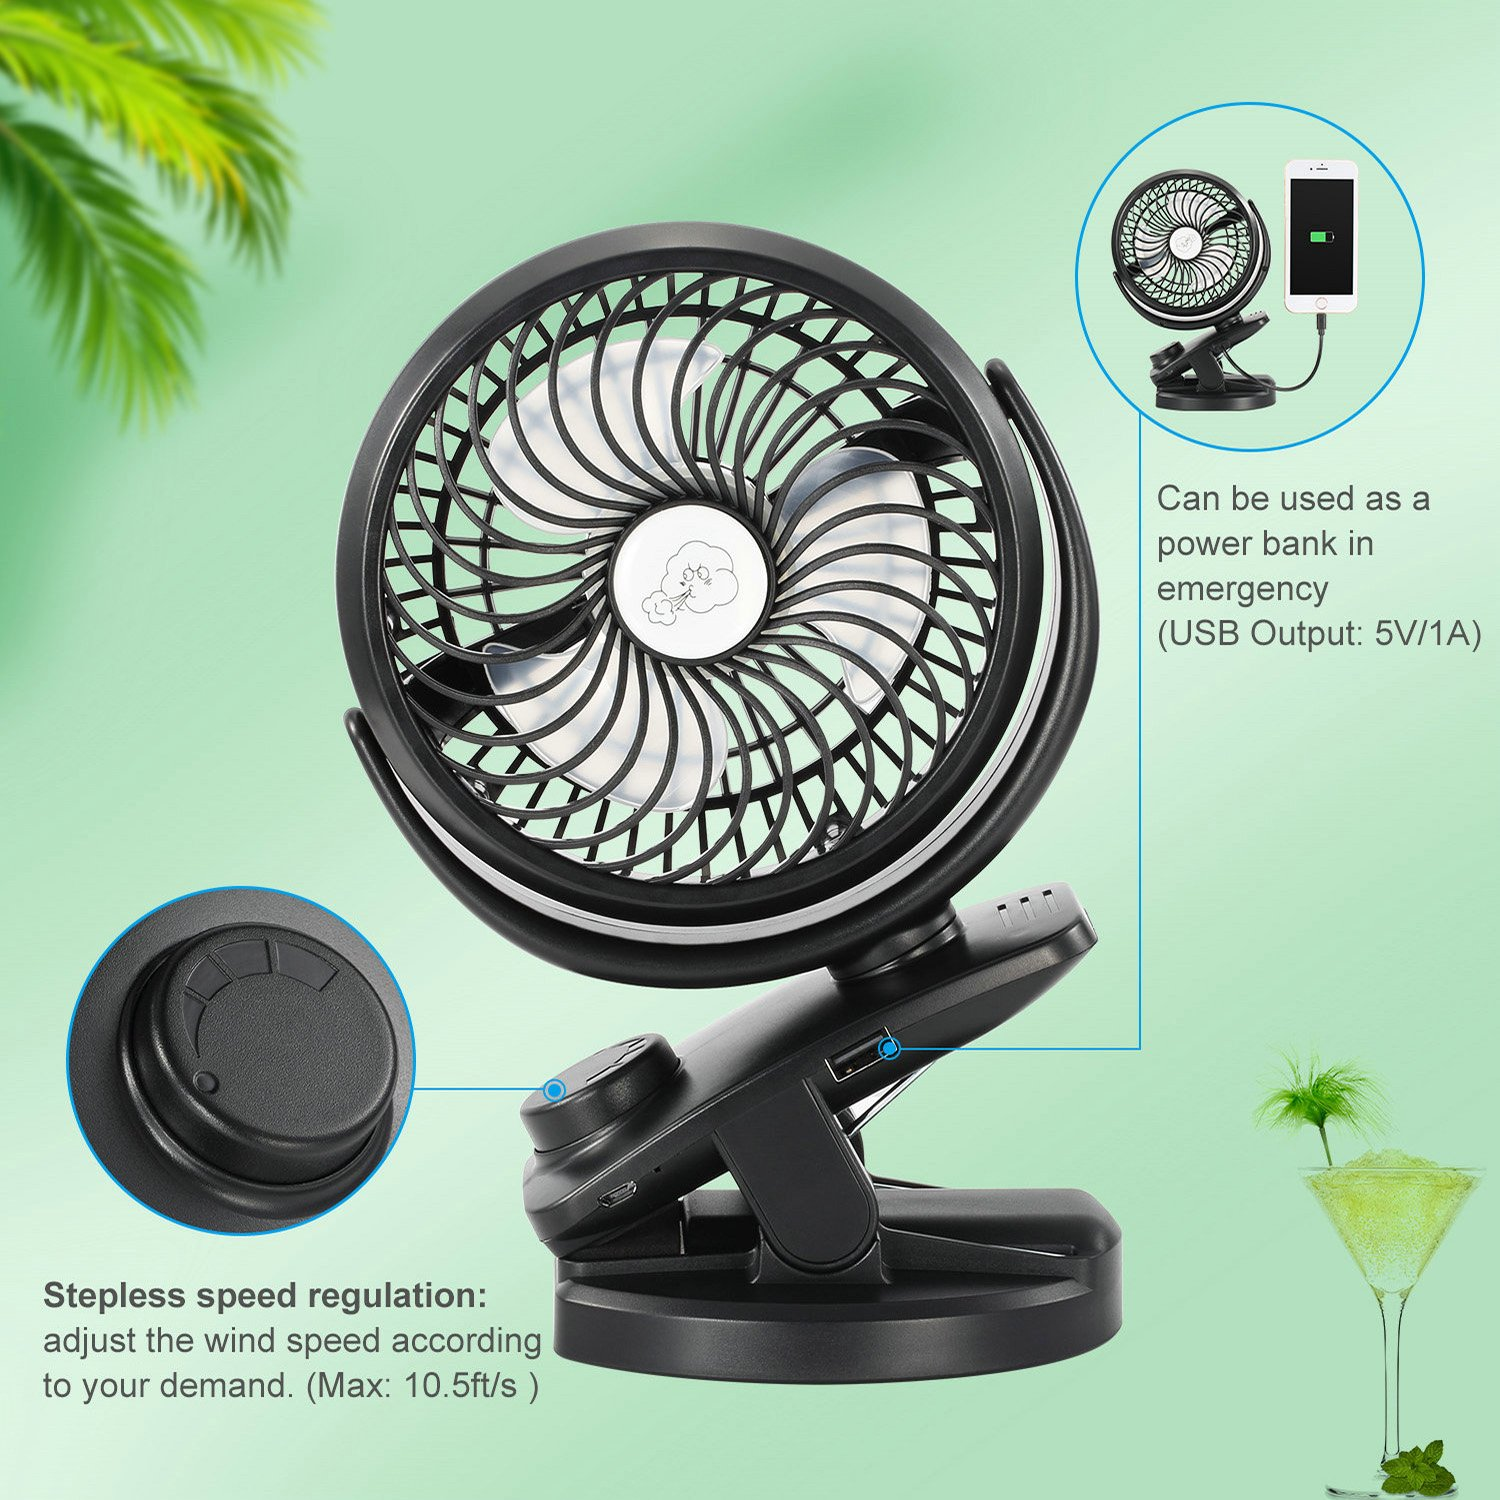 COMLIFE Portable Fan F150, USB Desk Fan with Rechargeable 4400 mAh Battery,Mini Clip on Fan with Powerbank &Aroma Diffuser Function,Stepless Speeds, Ideal for Stroller, Camping, Office, Outdoor,Travel by COMLIFE (Image #3)